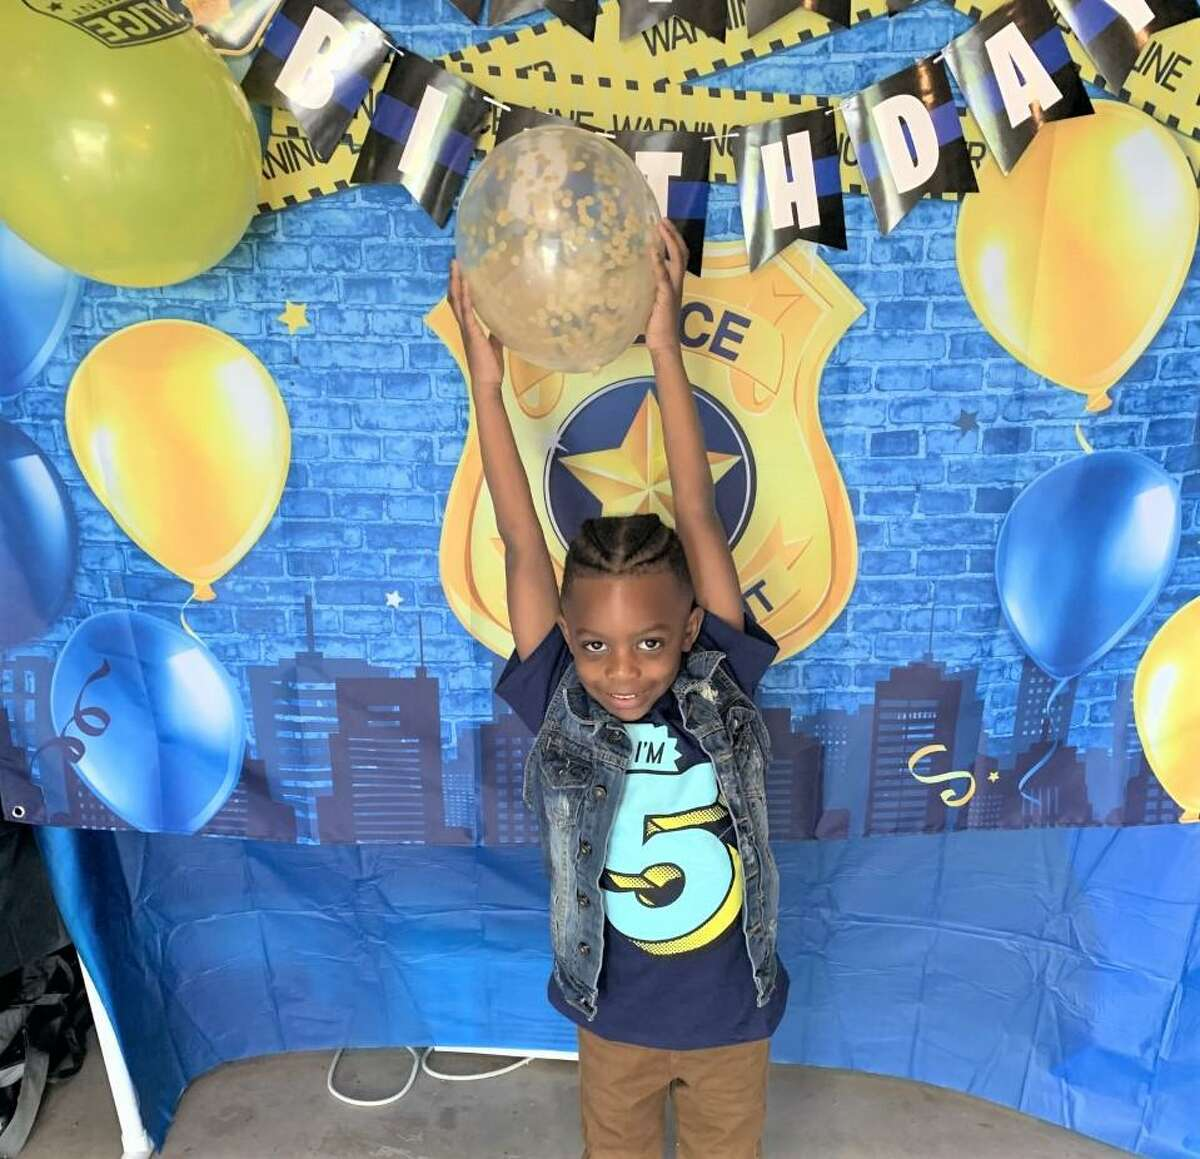 Middletown High School Resource Officer Emilio Magnano surprised Kiarra Bennett's 5-year-old son at his fifth birthday party.